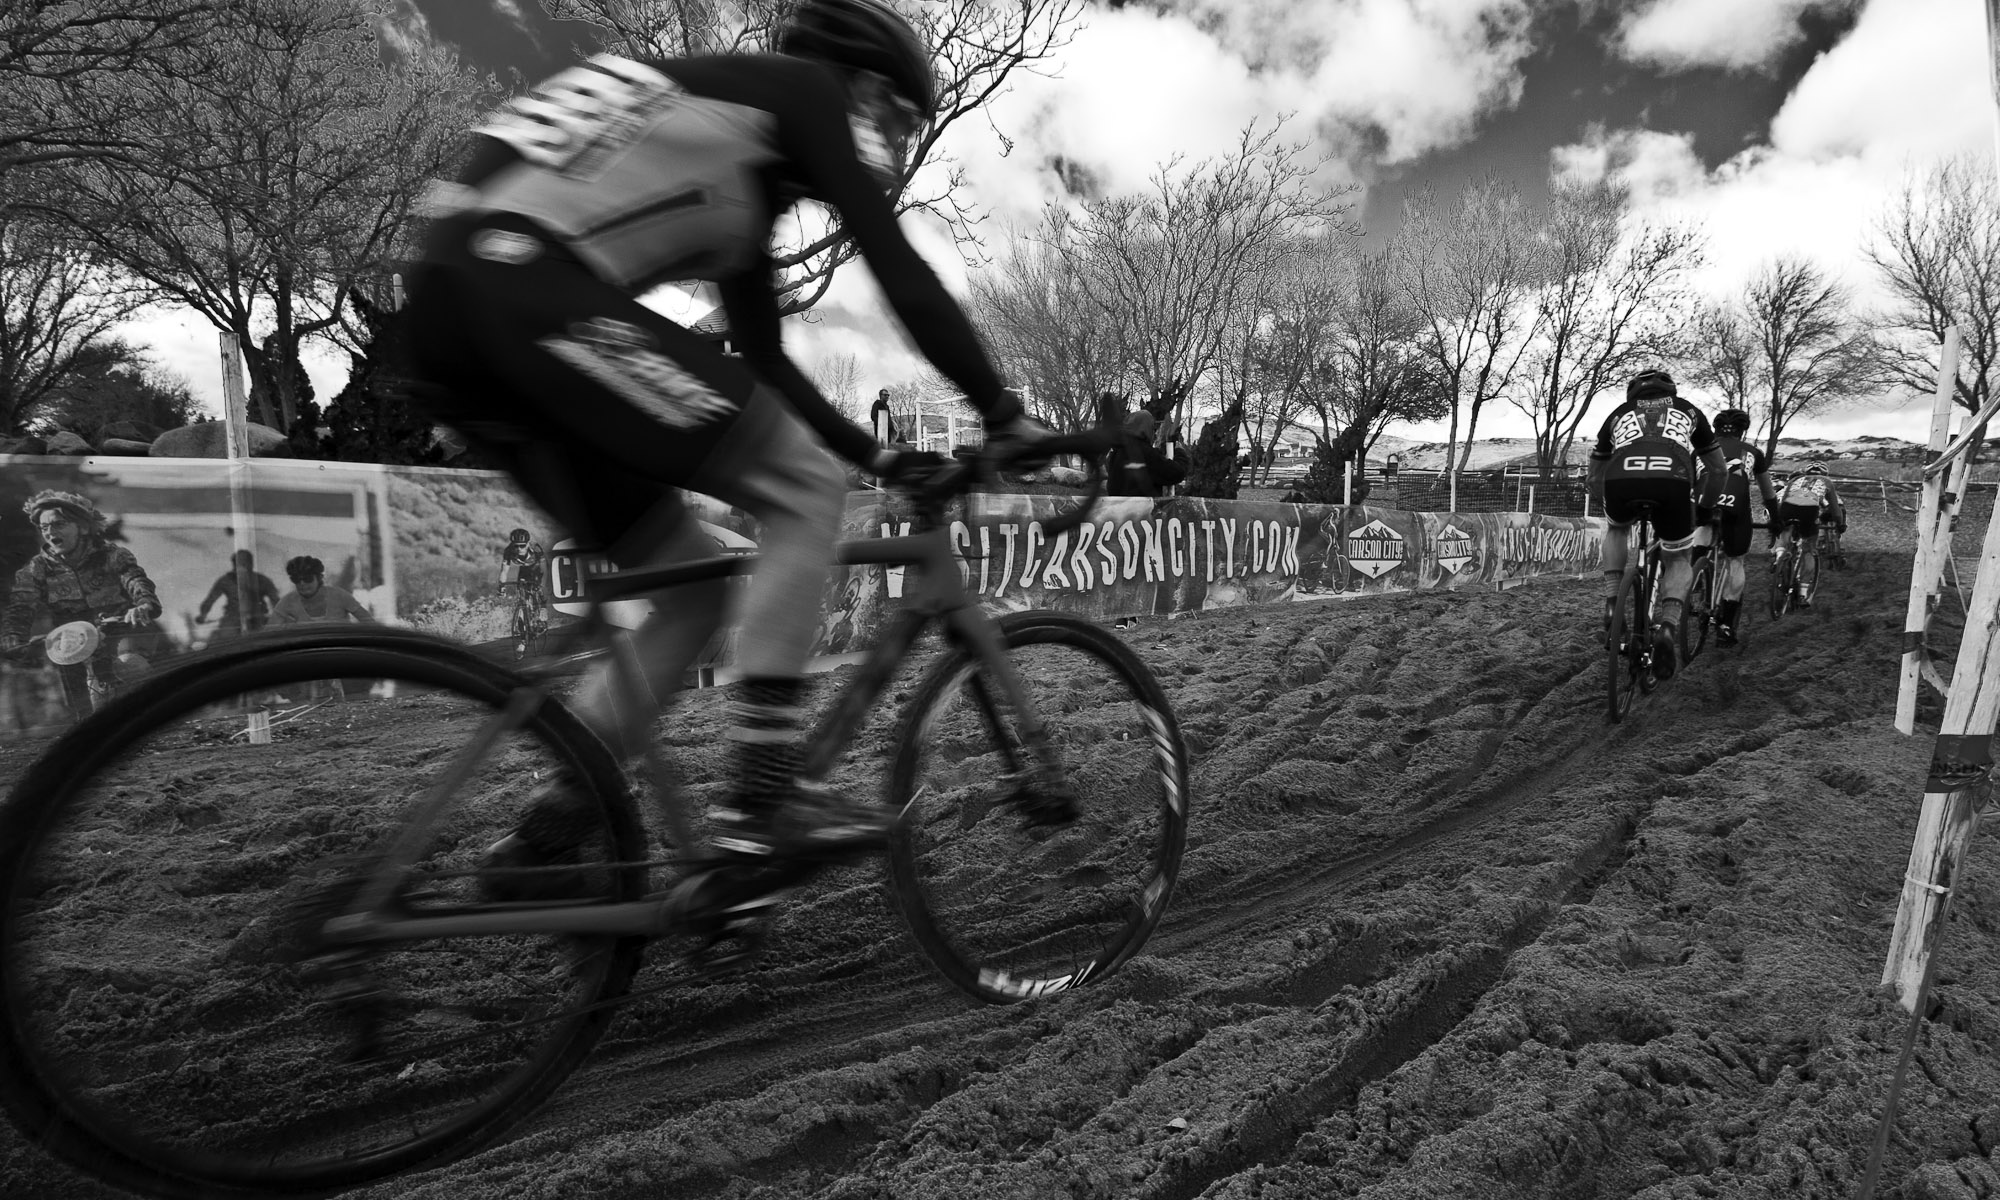 Cyclocross racers riding the sand feature